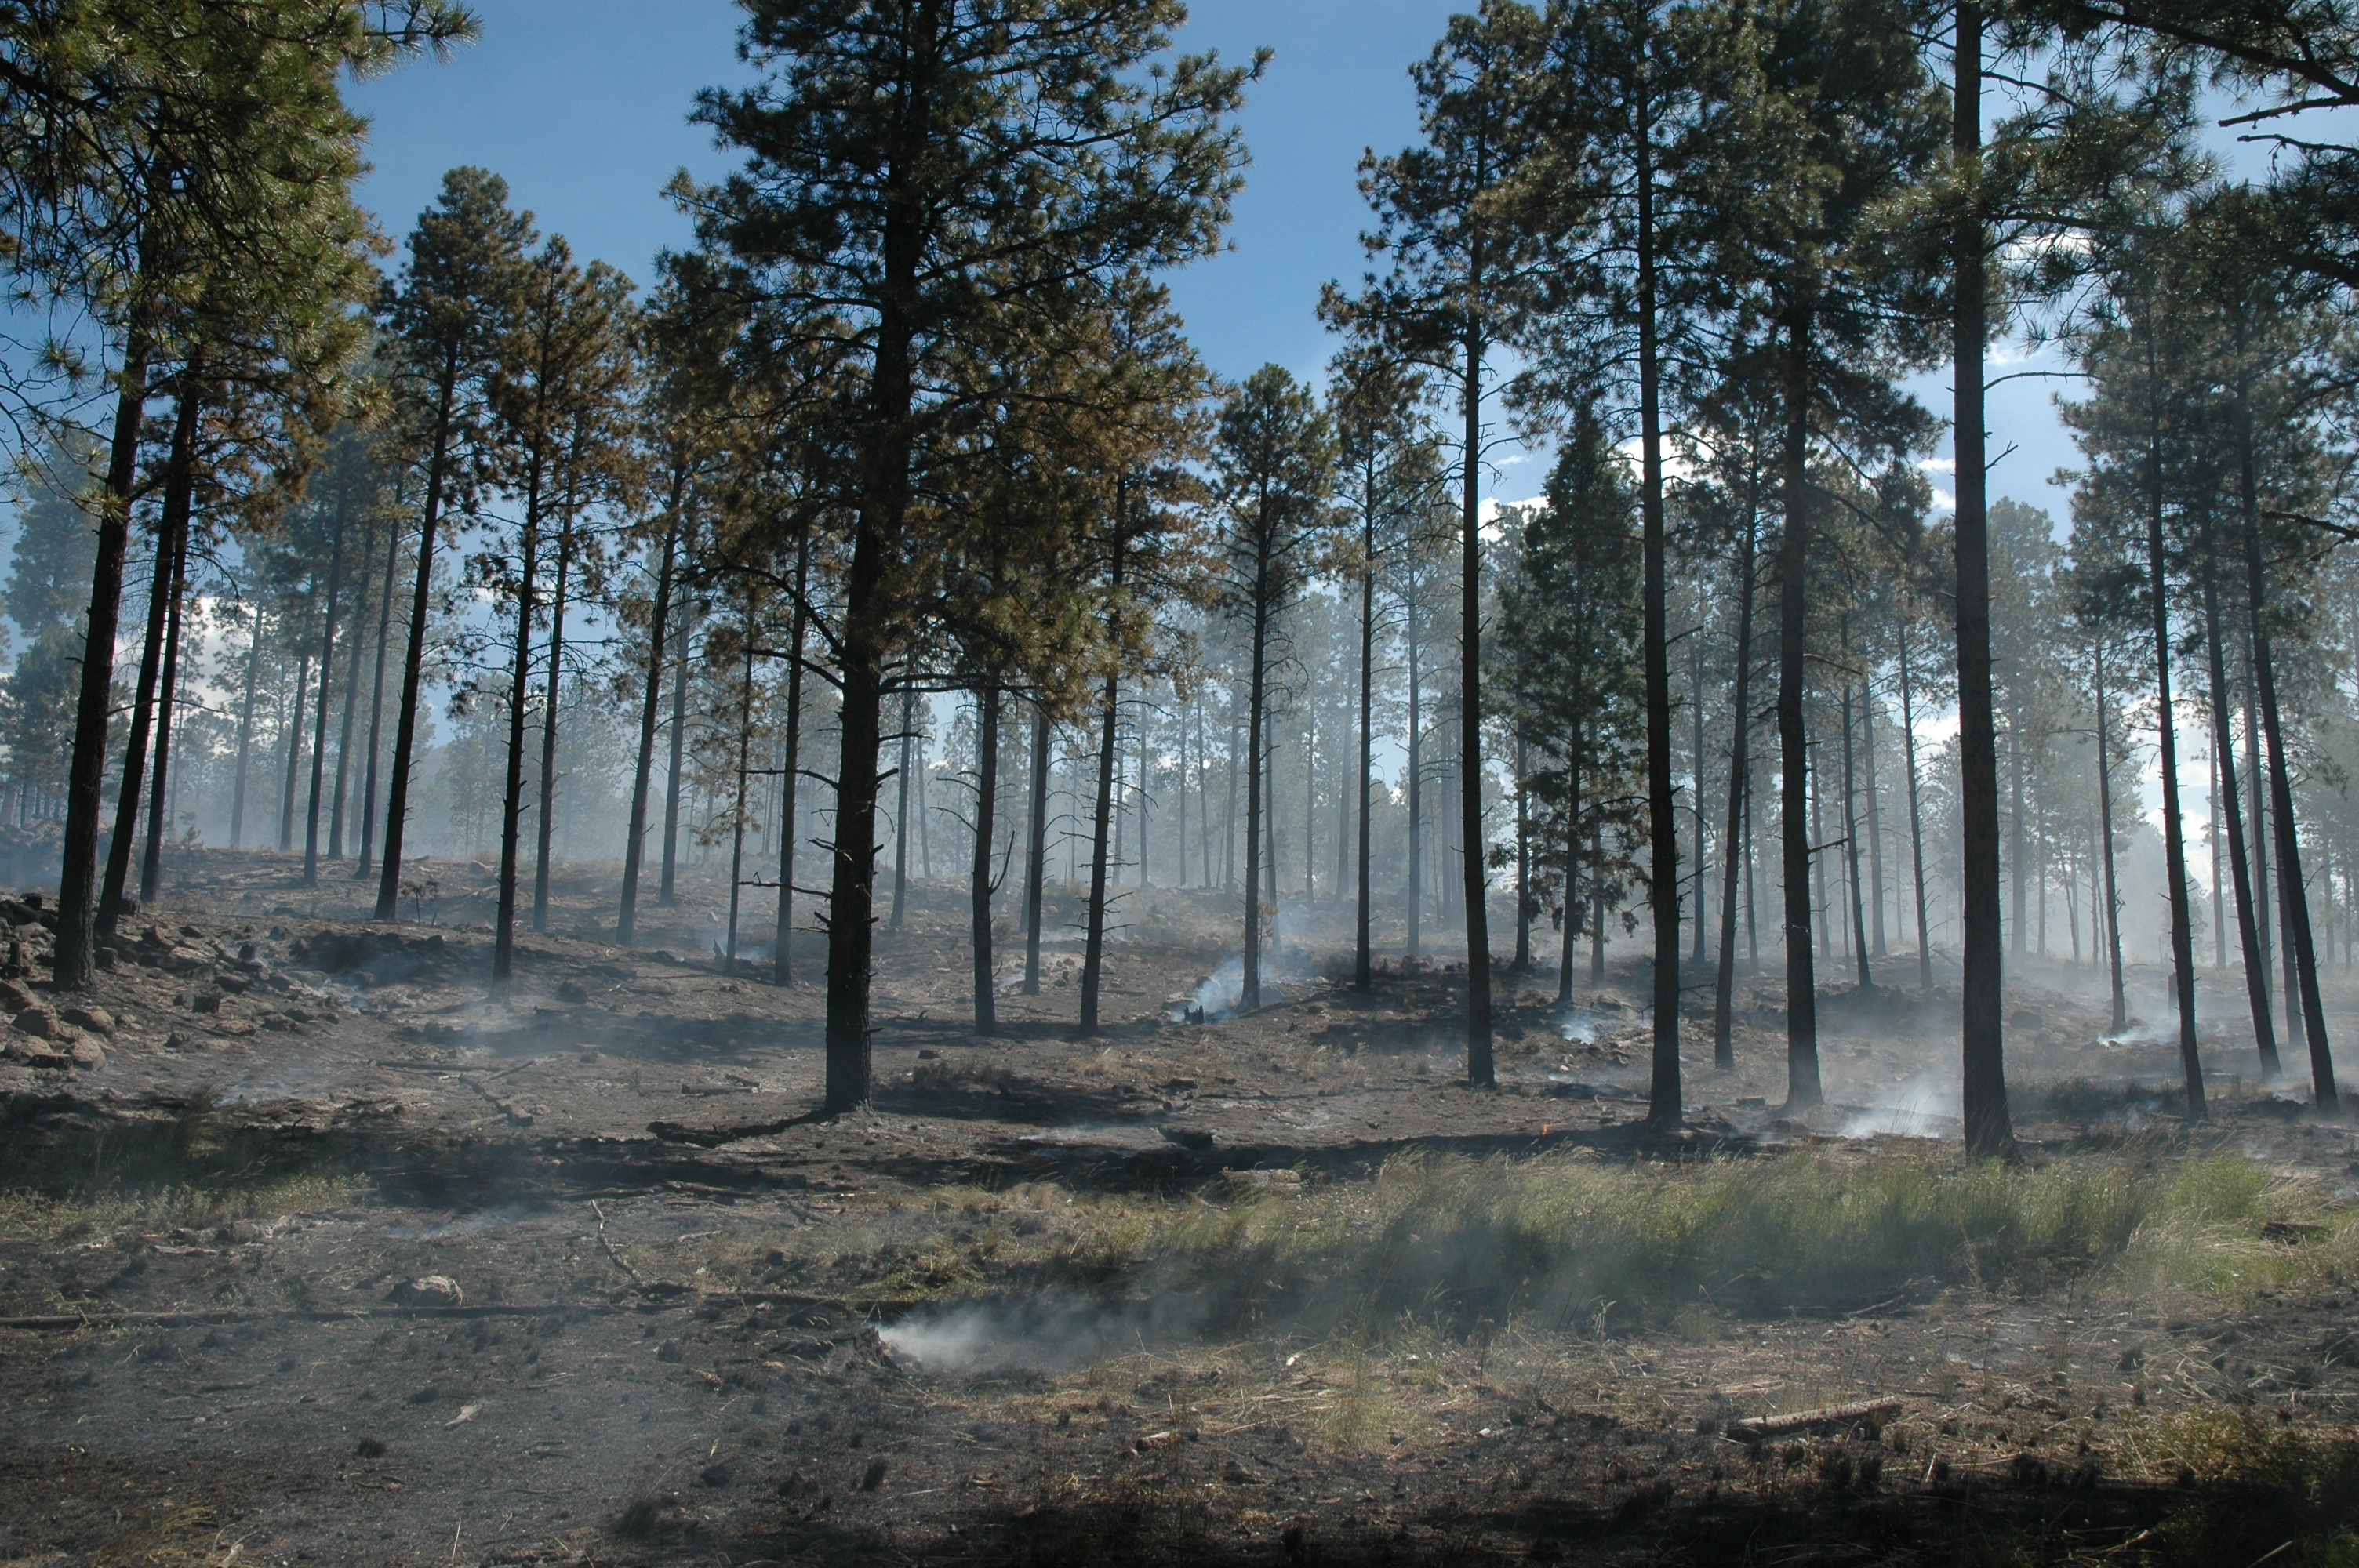 Managed for resource benefit, the lightning caused Big Hat Fire moves slowly through a recently thinned area in the Valles Caldera National Preserve.